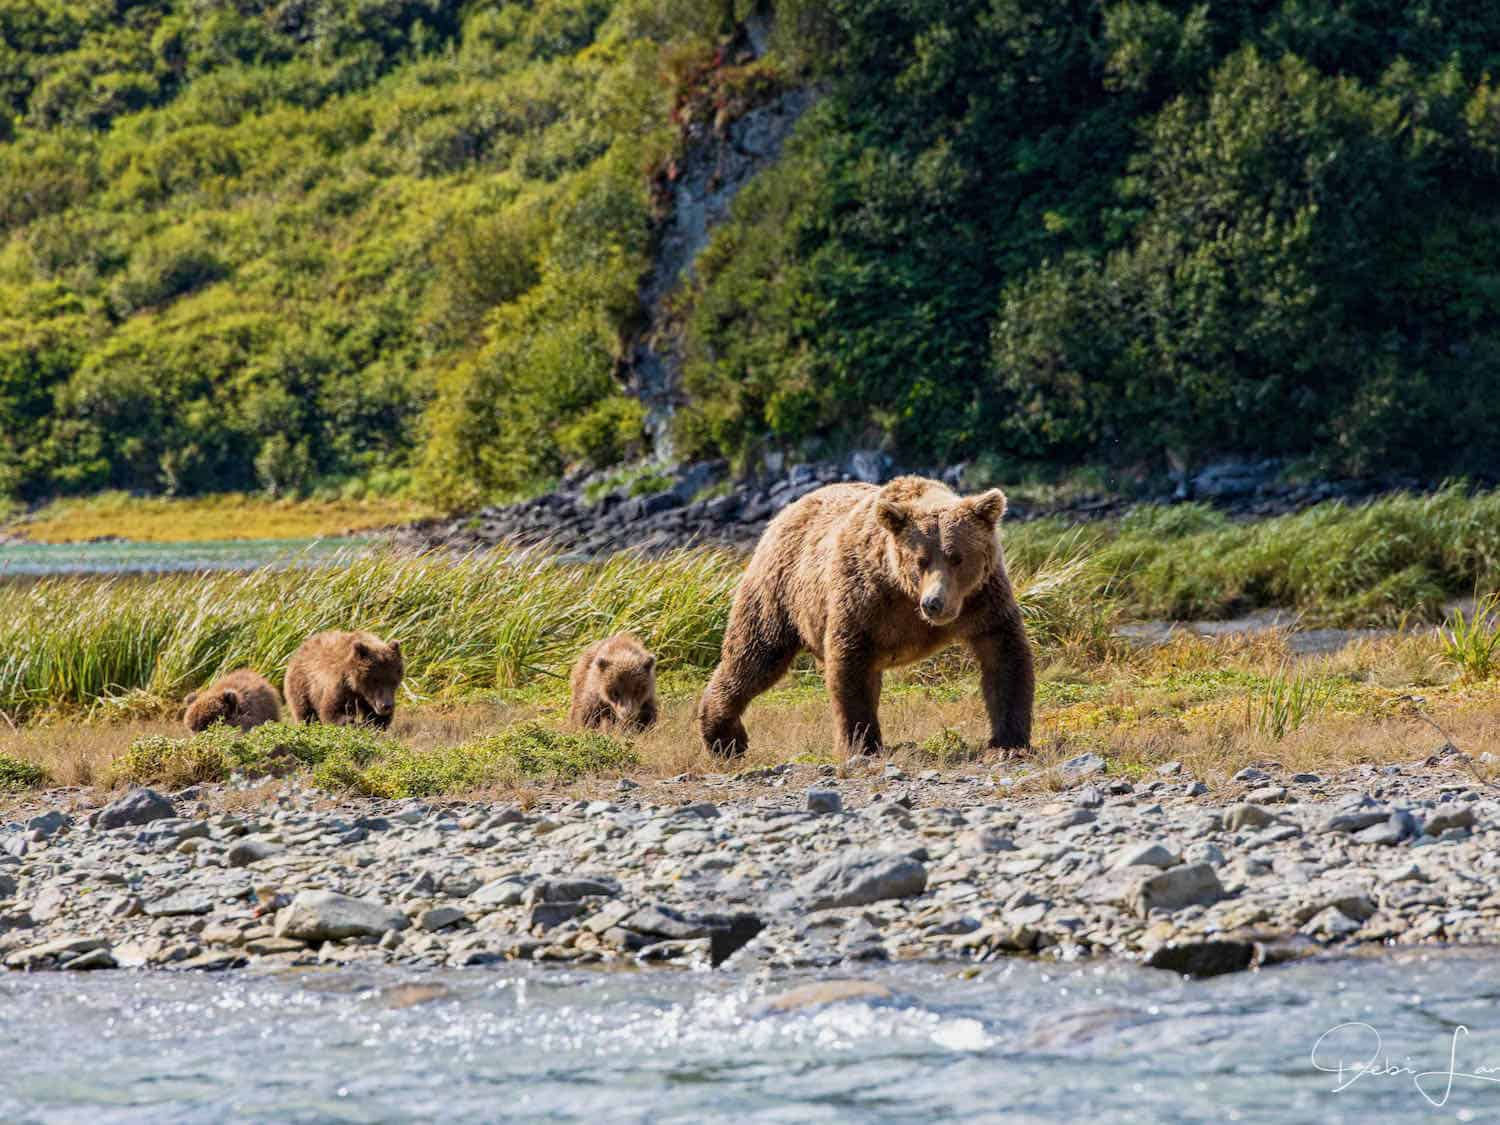 Mother brown bear leads triplet coy bears next to a river